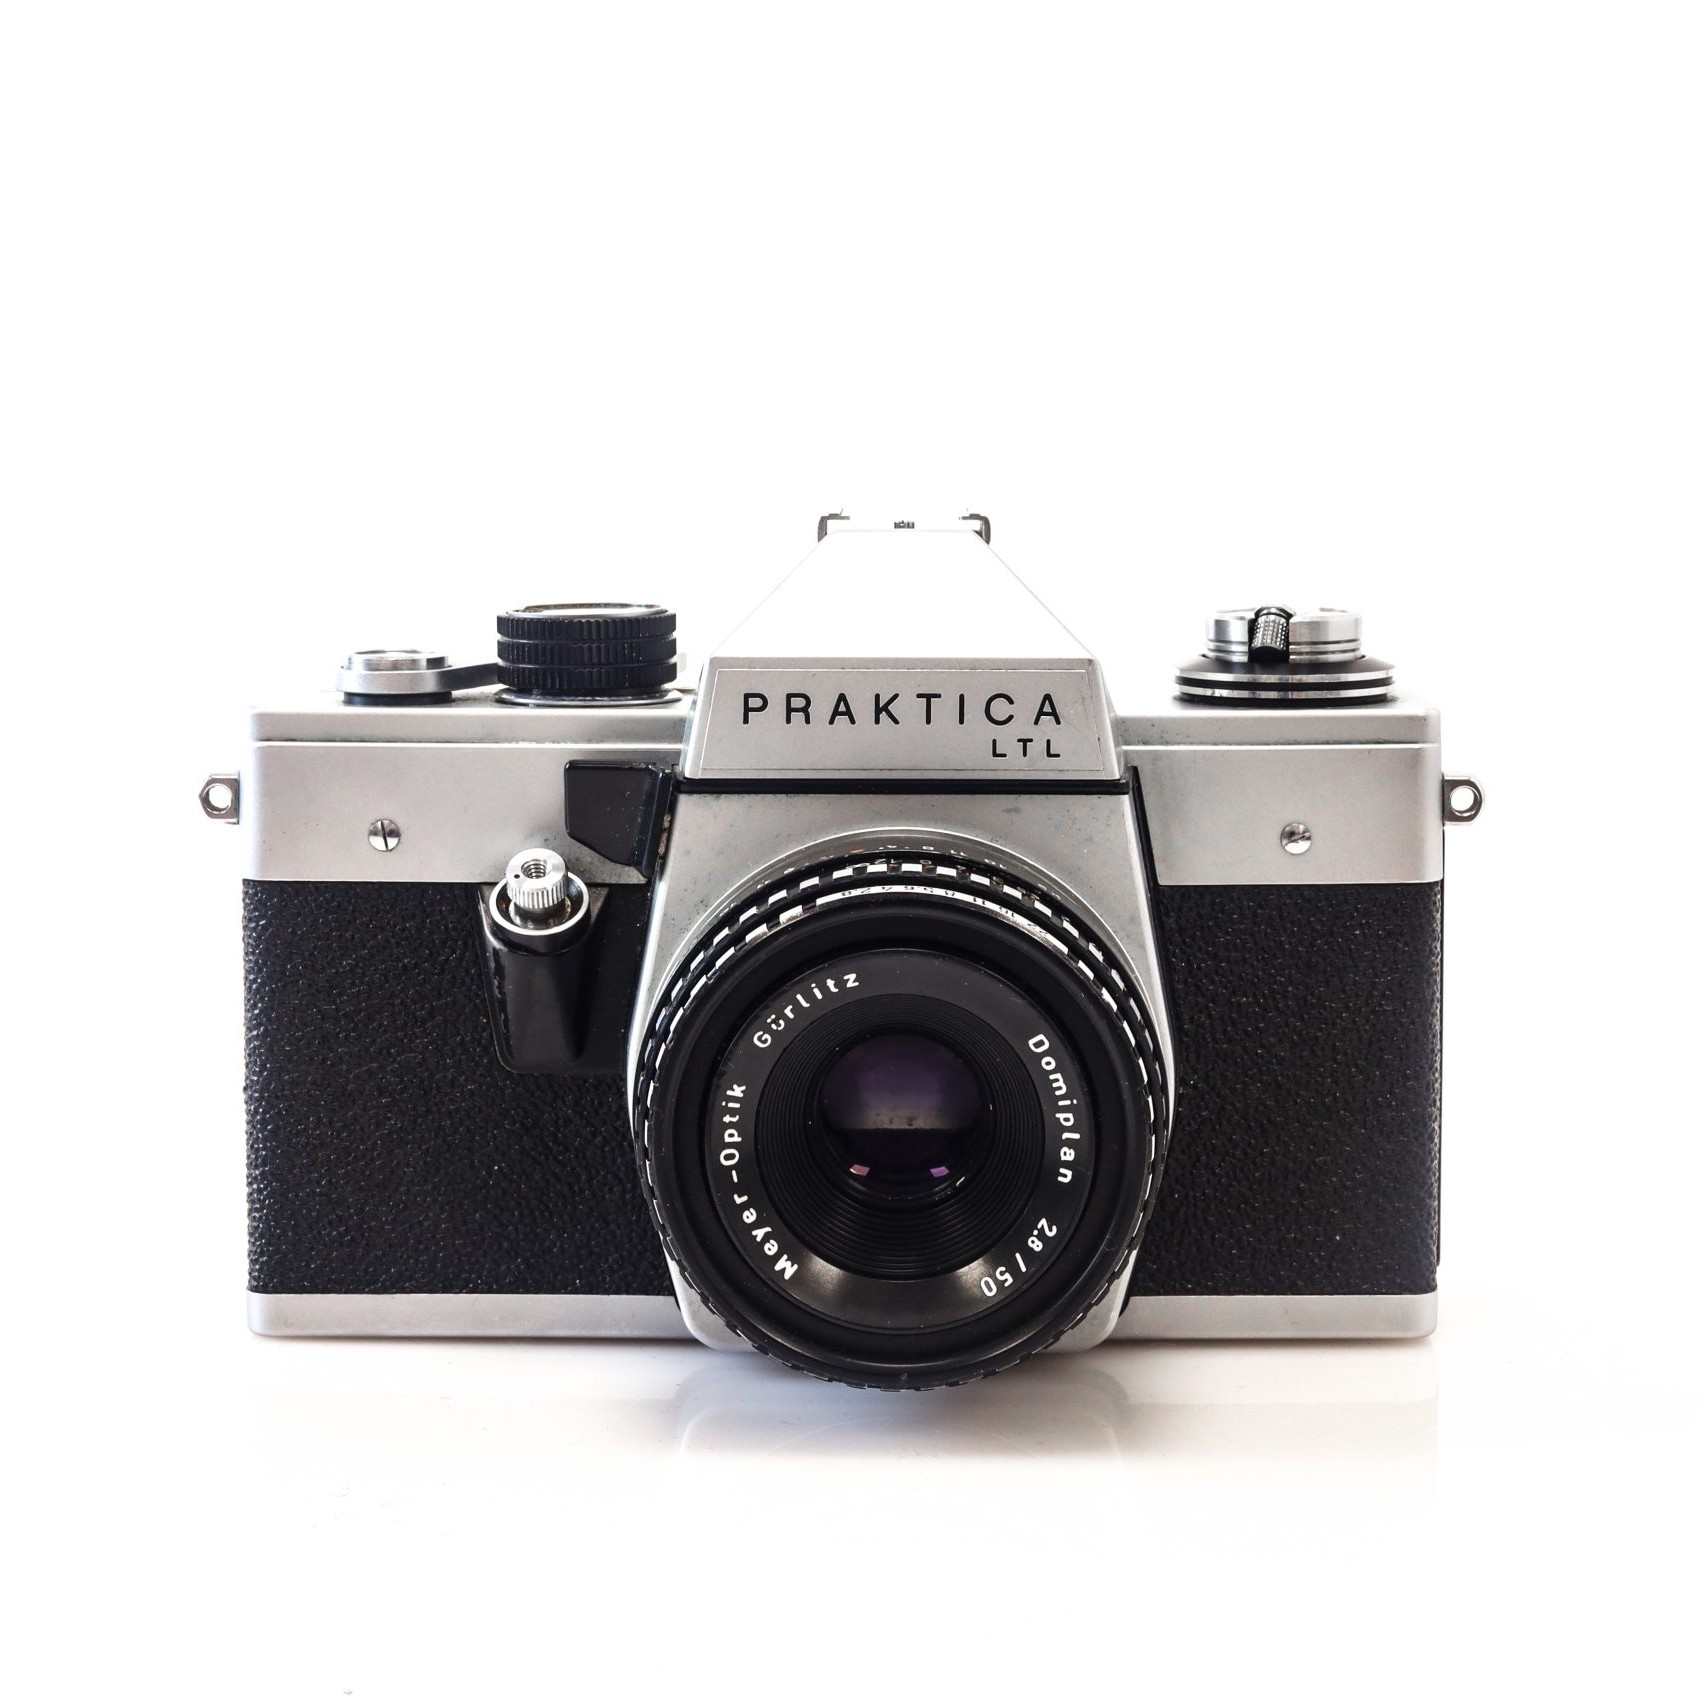 Beautiful Praktica LTL 35mm Film Camera with Meyer Optiks 50mm F2.8 Lens